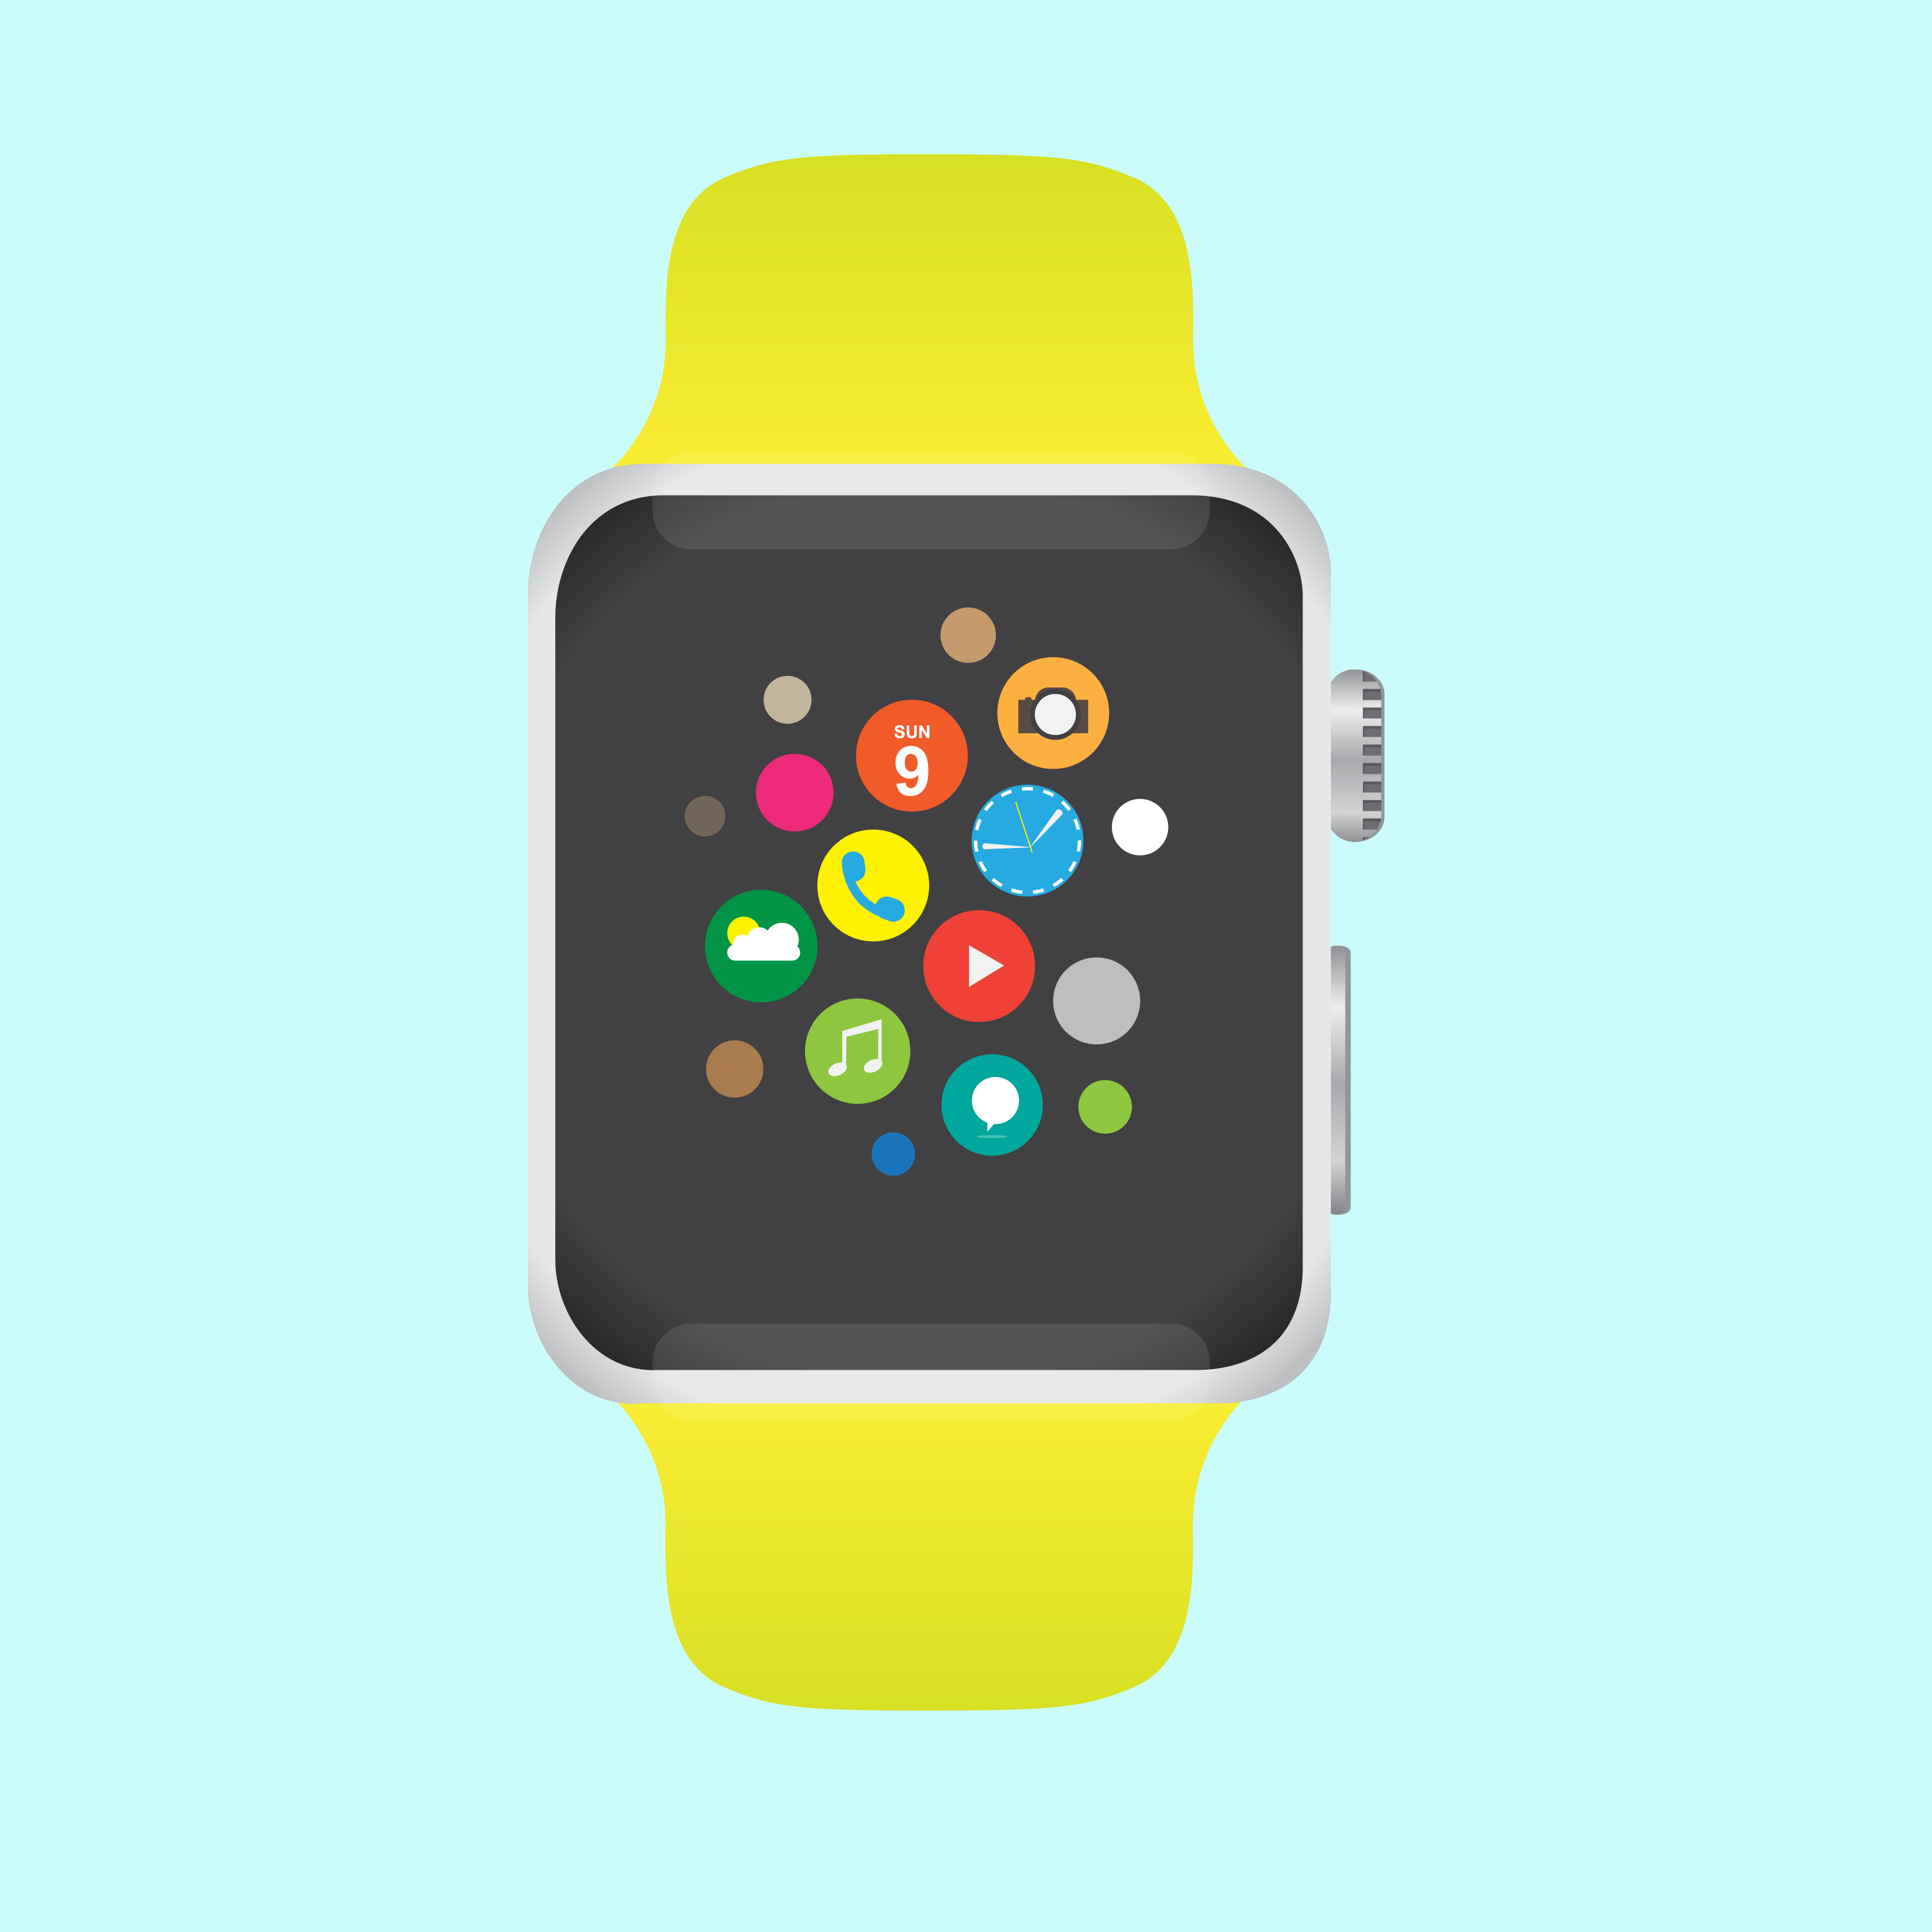 Three Days with the Apple Watch